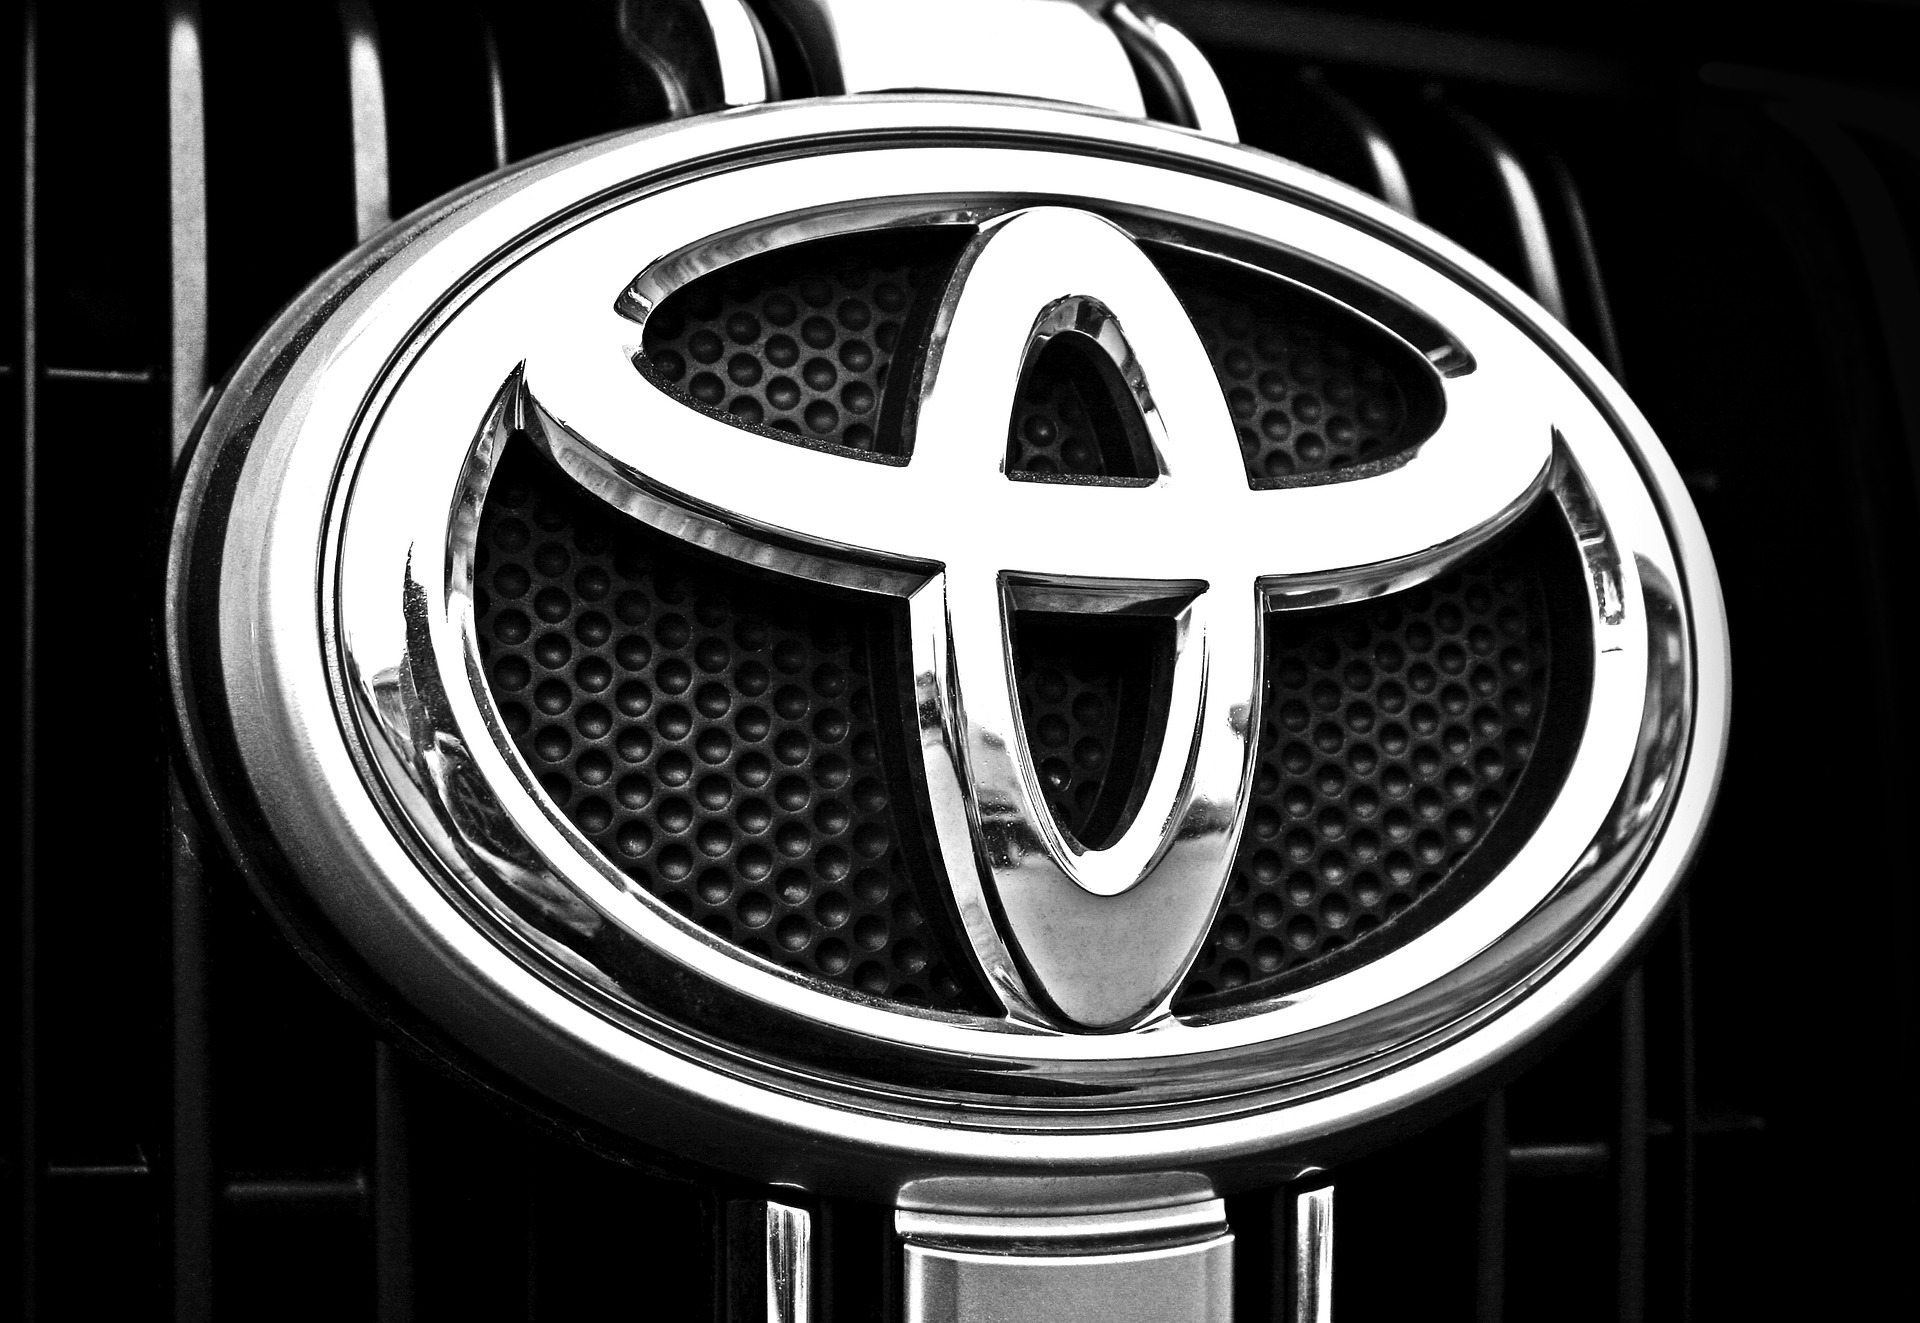 Toyota Shows Off A Blacked Out Version Of Their Prius